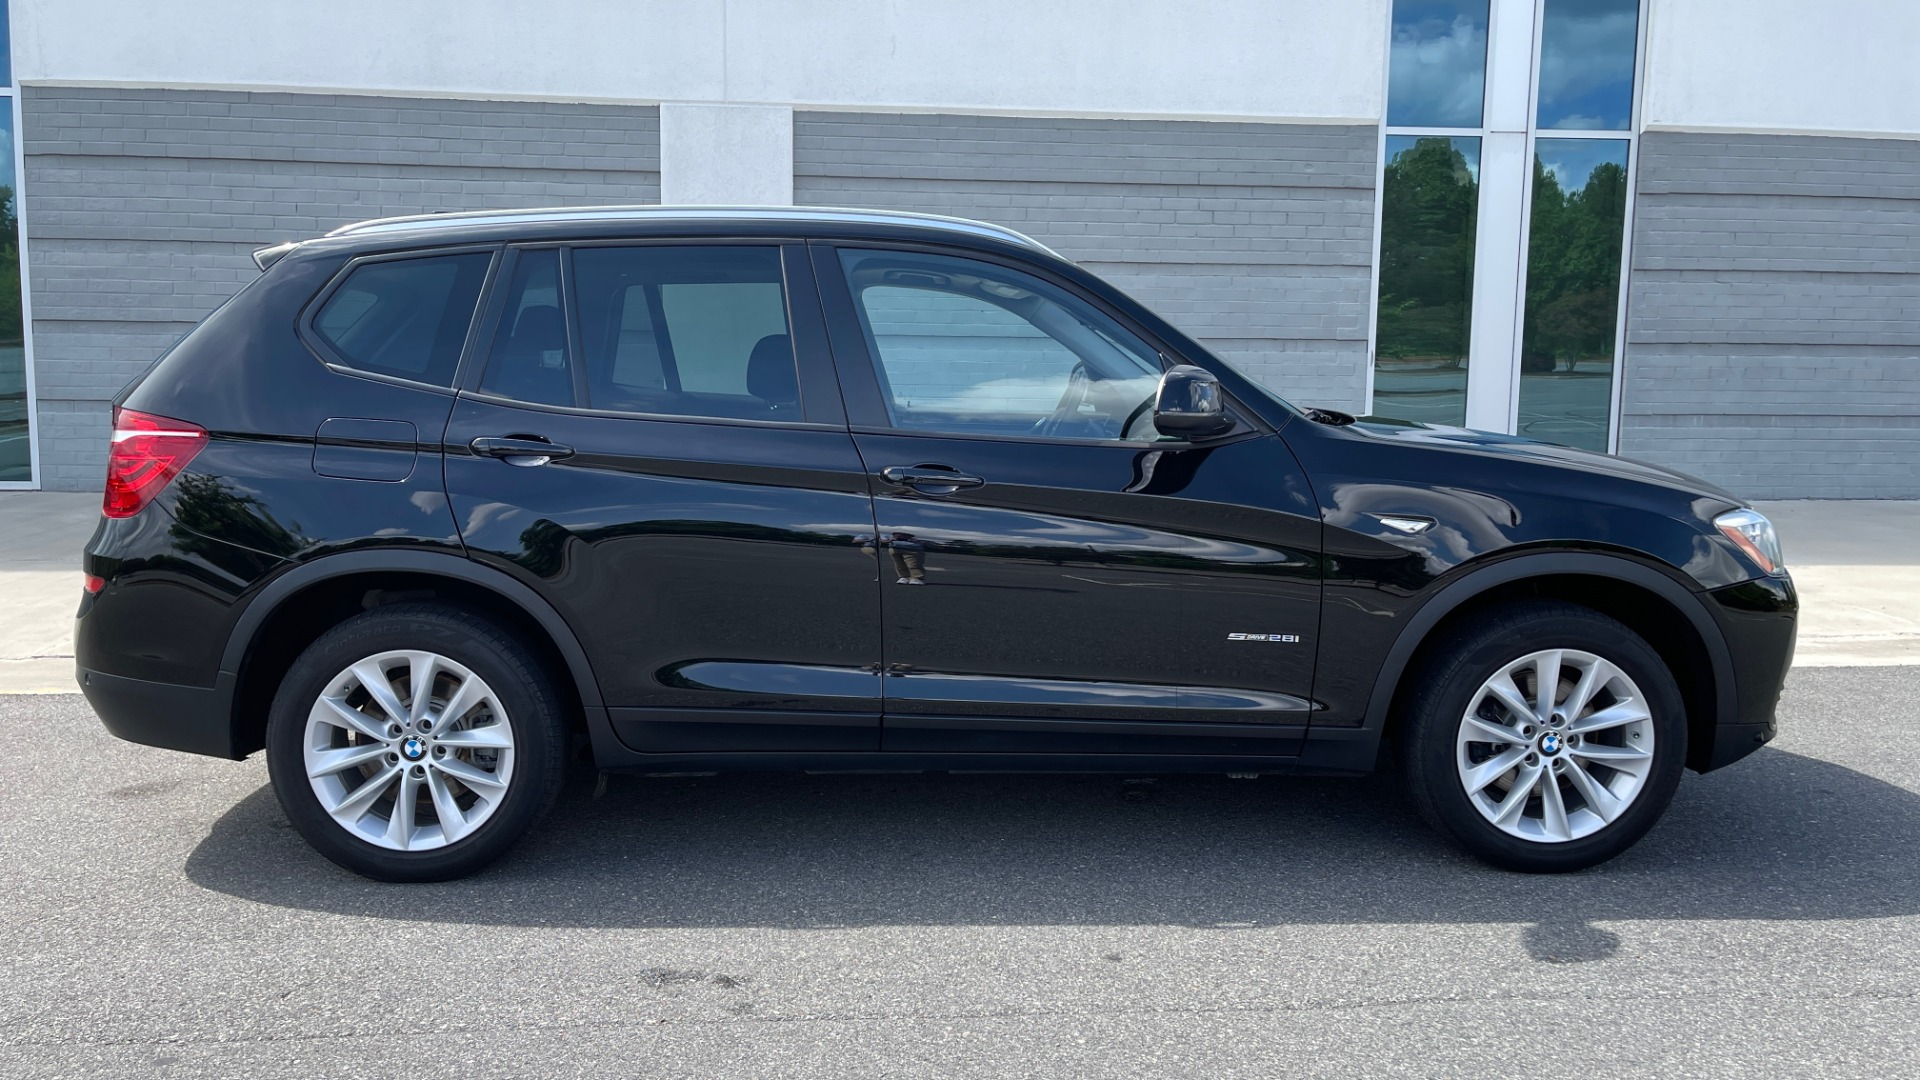 Used 2017 BMW X3 SDRIVE28I / DRVR ASST PKG / HTD STS / REARVIEW / 18IN WHEELS for sale $24,995 at Formula Imports in Charlotte NC 28227 4